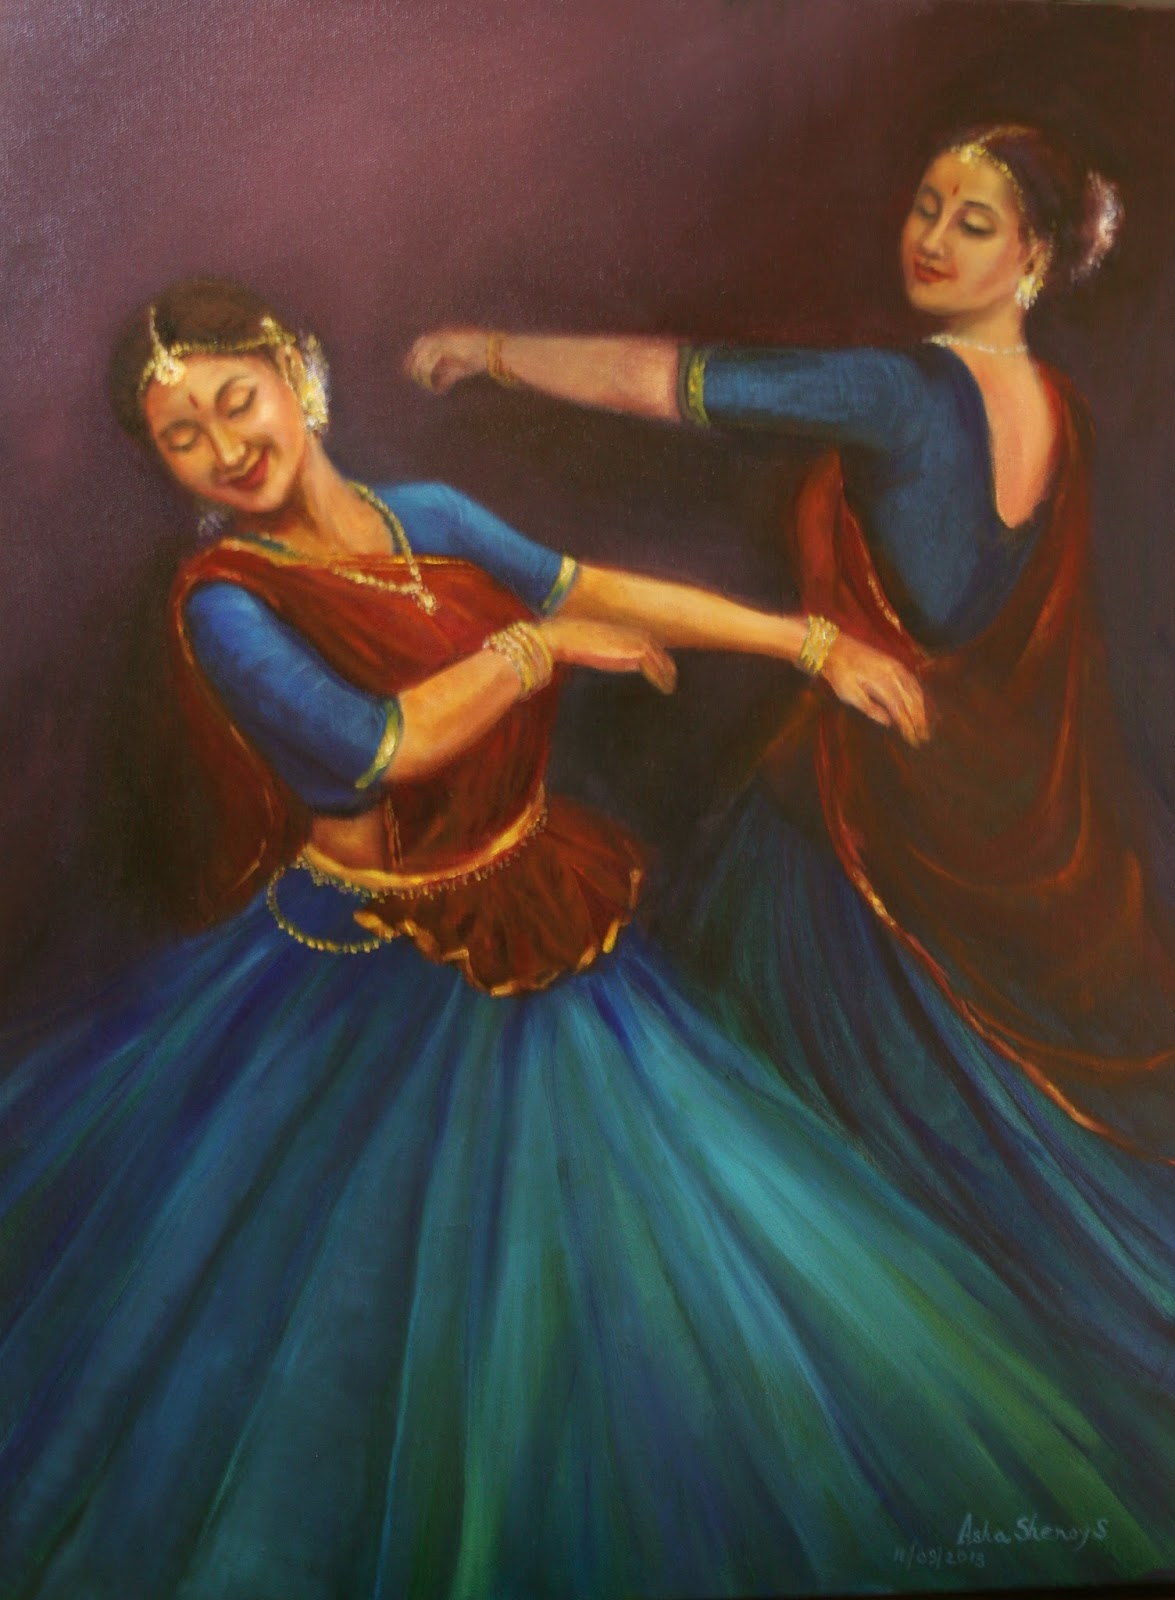 Painting by Asha Sudhaker Shenoy, Artist Profile at Art Scene India, Image cortesy artist